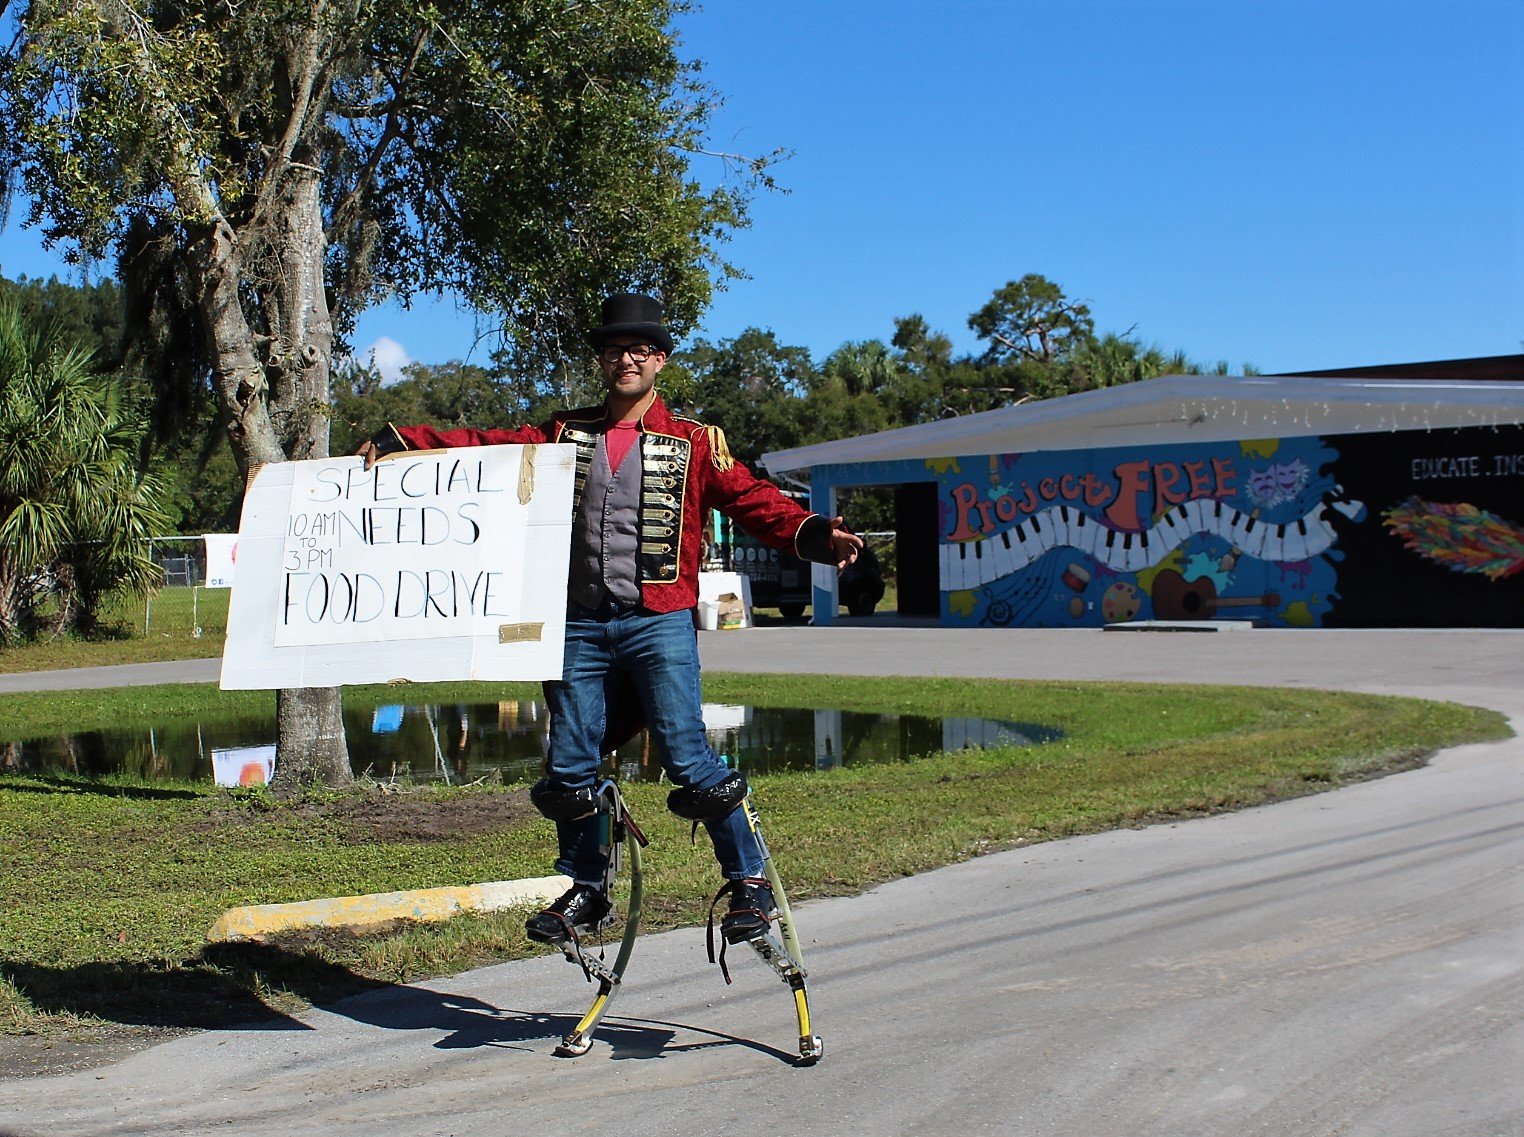 A man on stilts carrying a white sign.